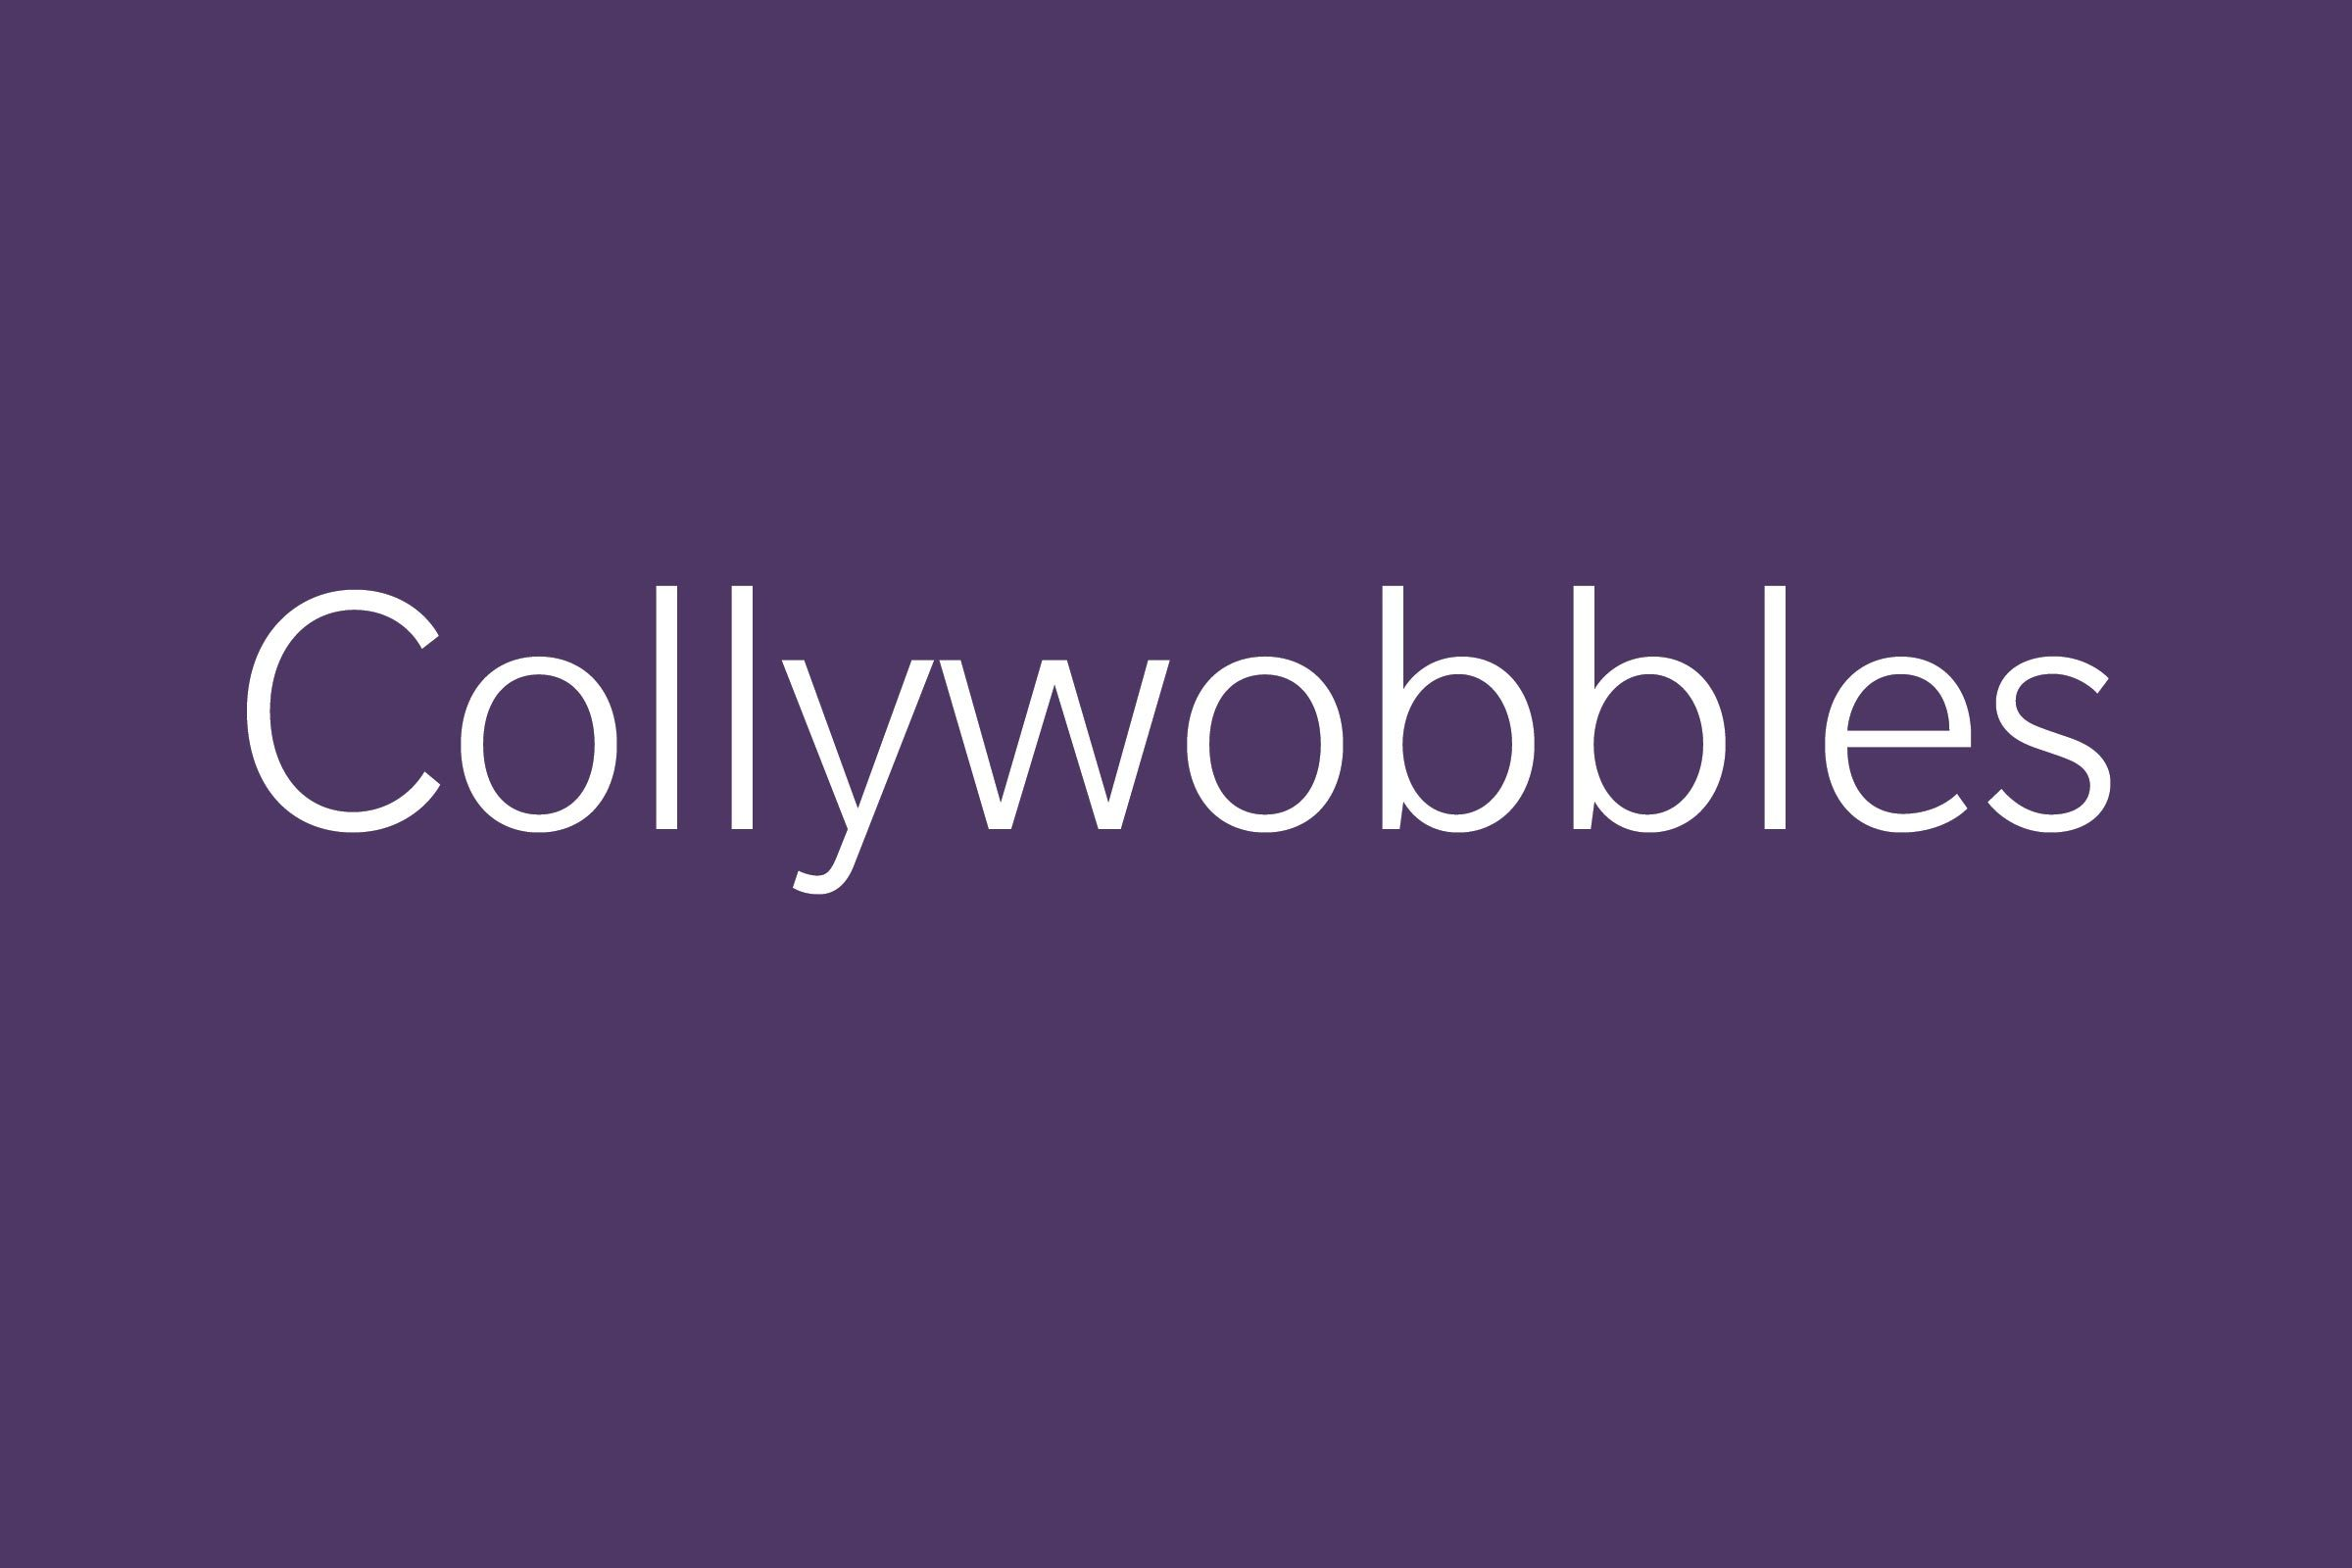 collywobbles funny word funny words to say